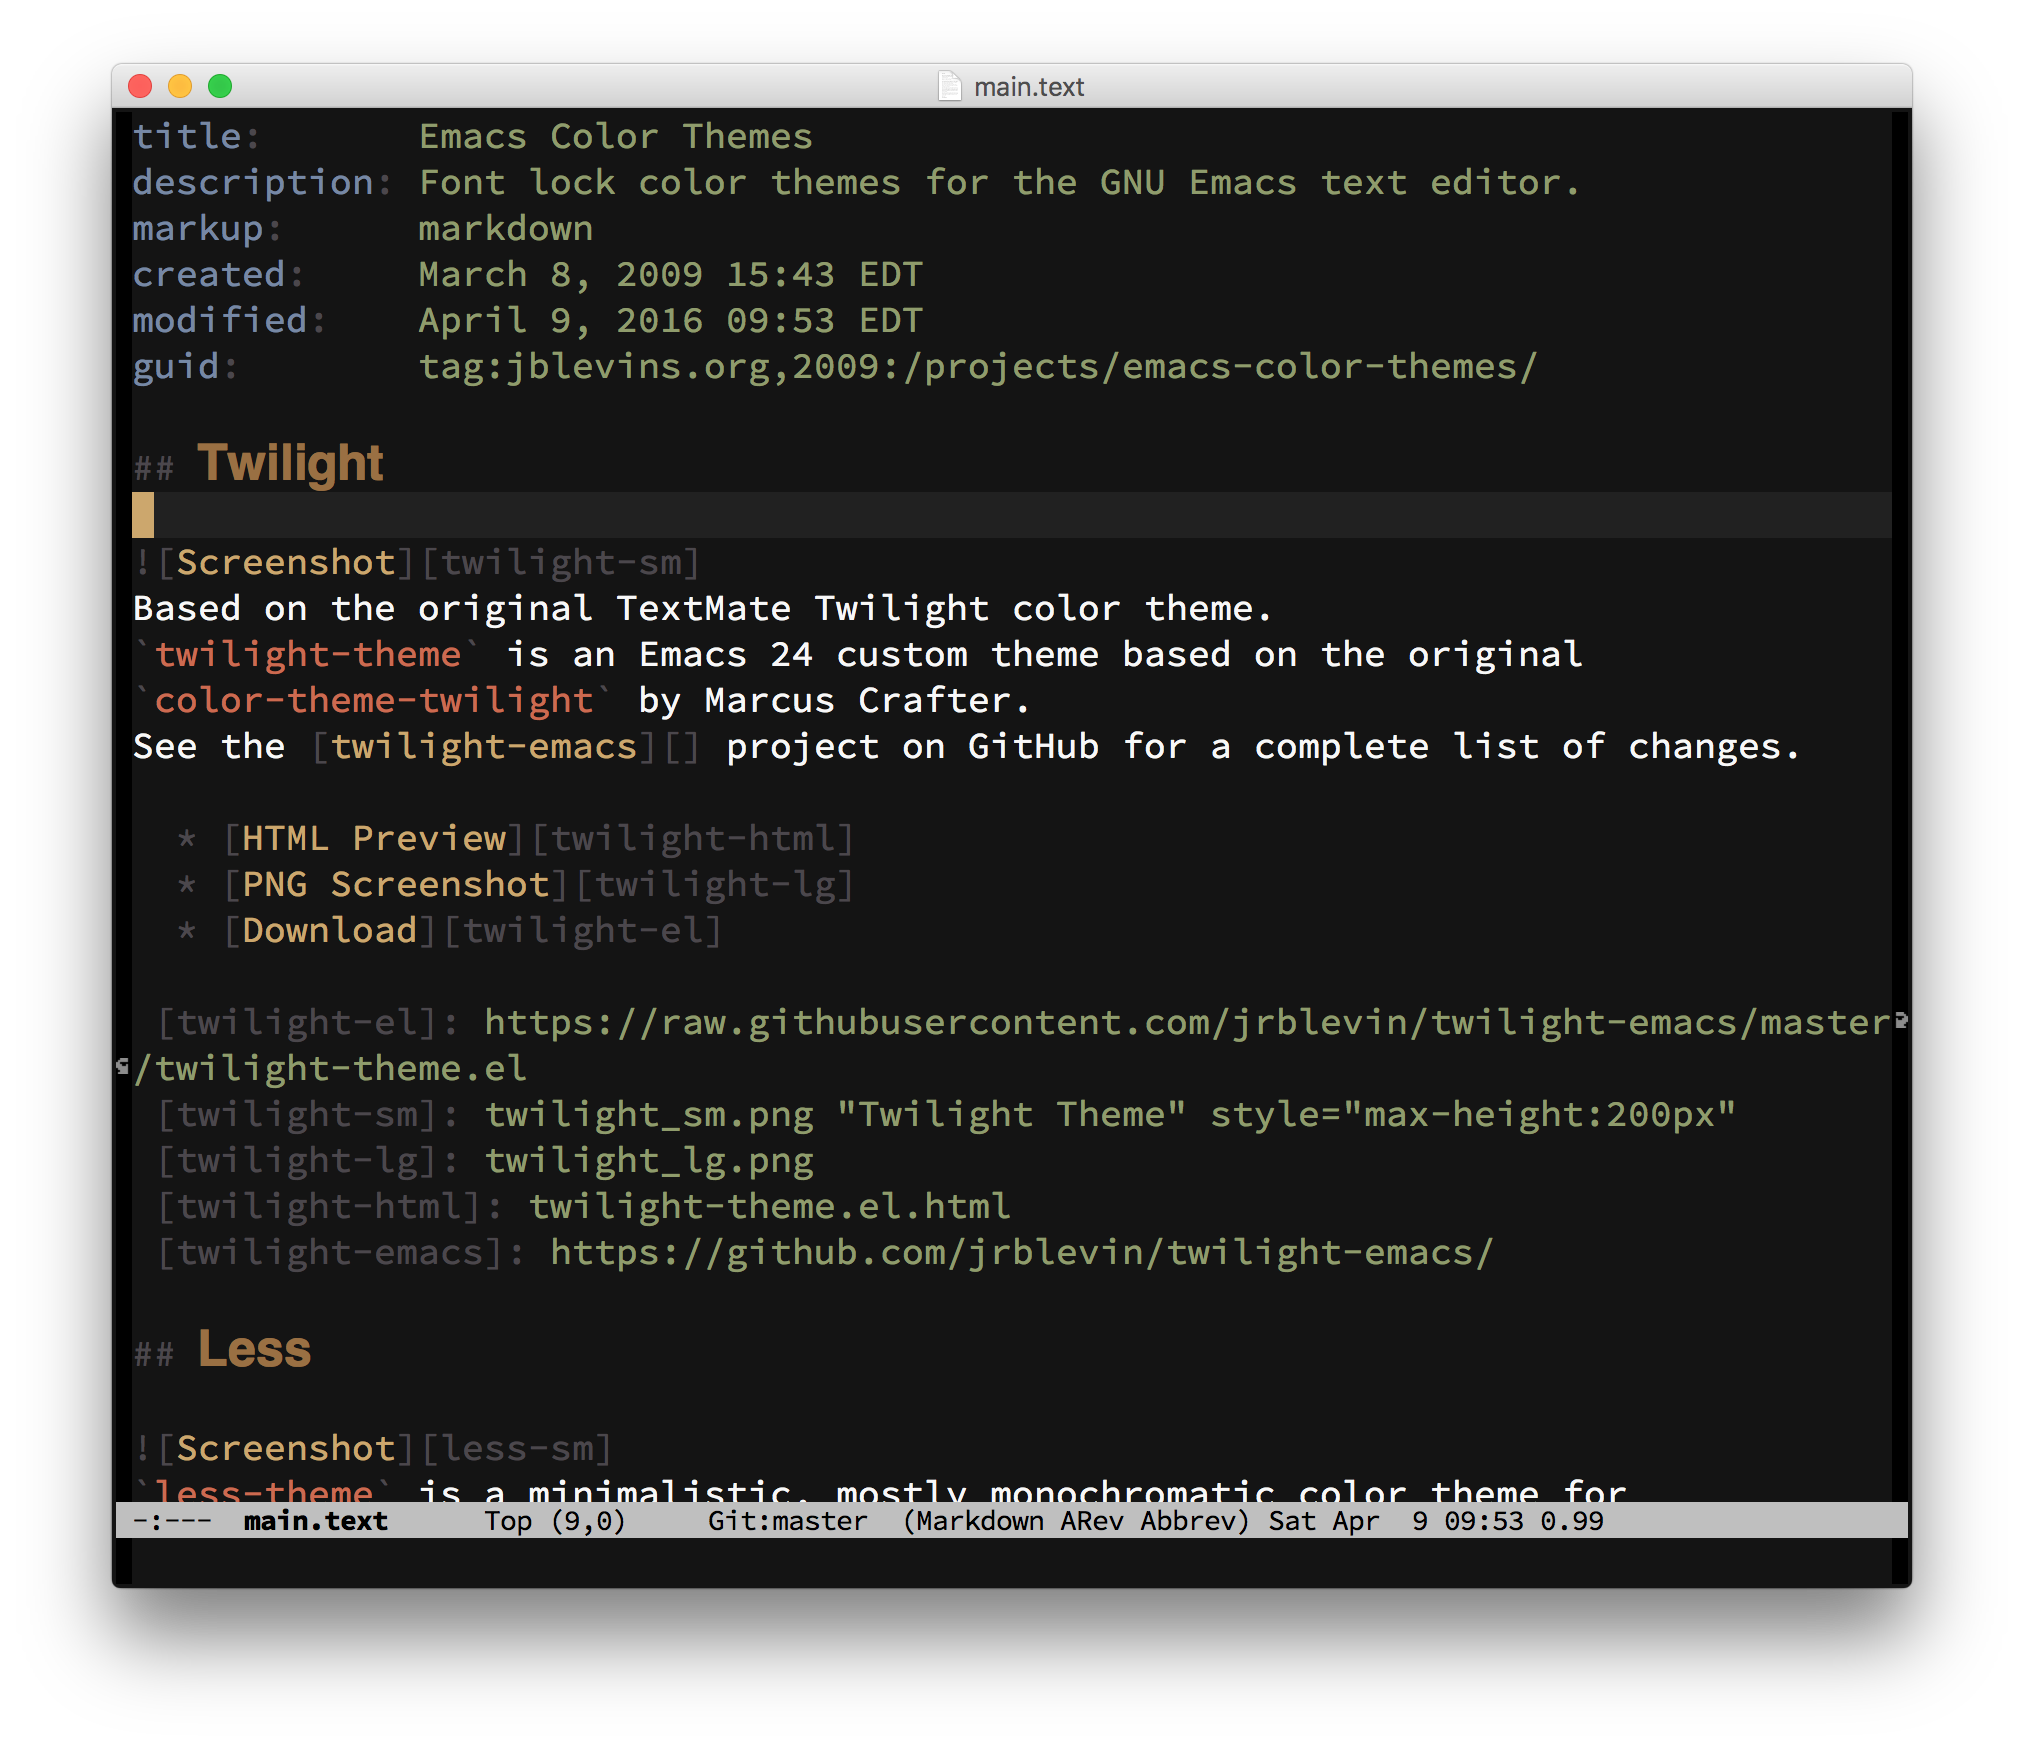 emacs color themes